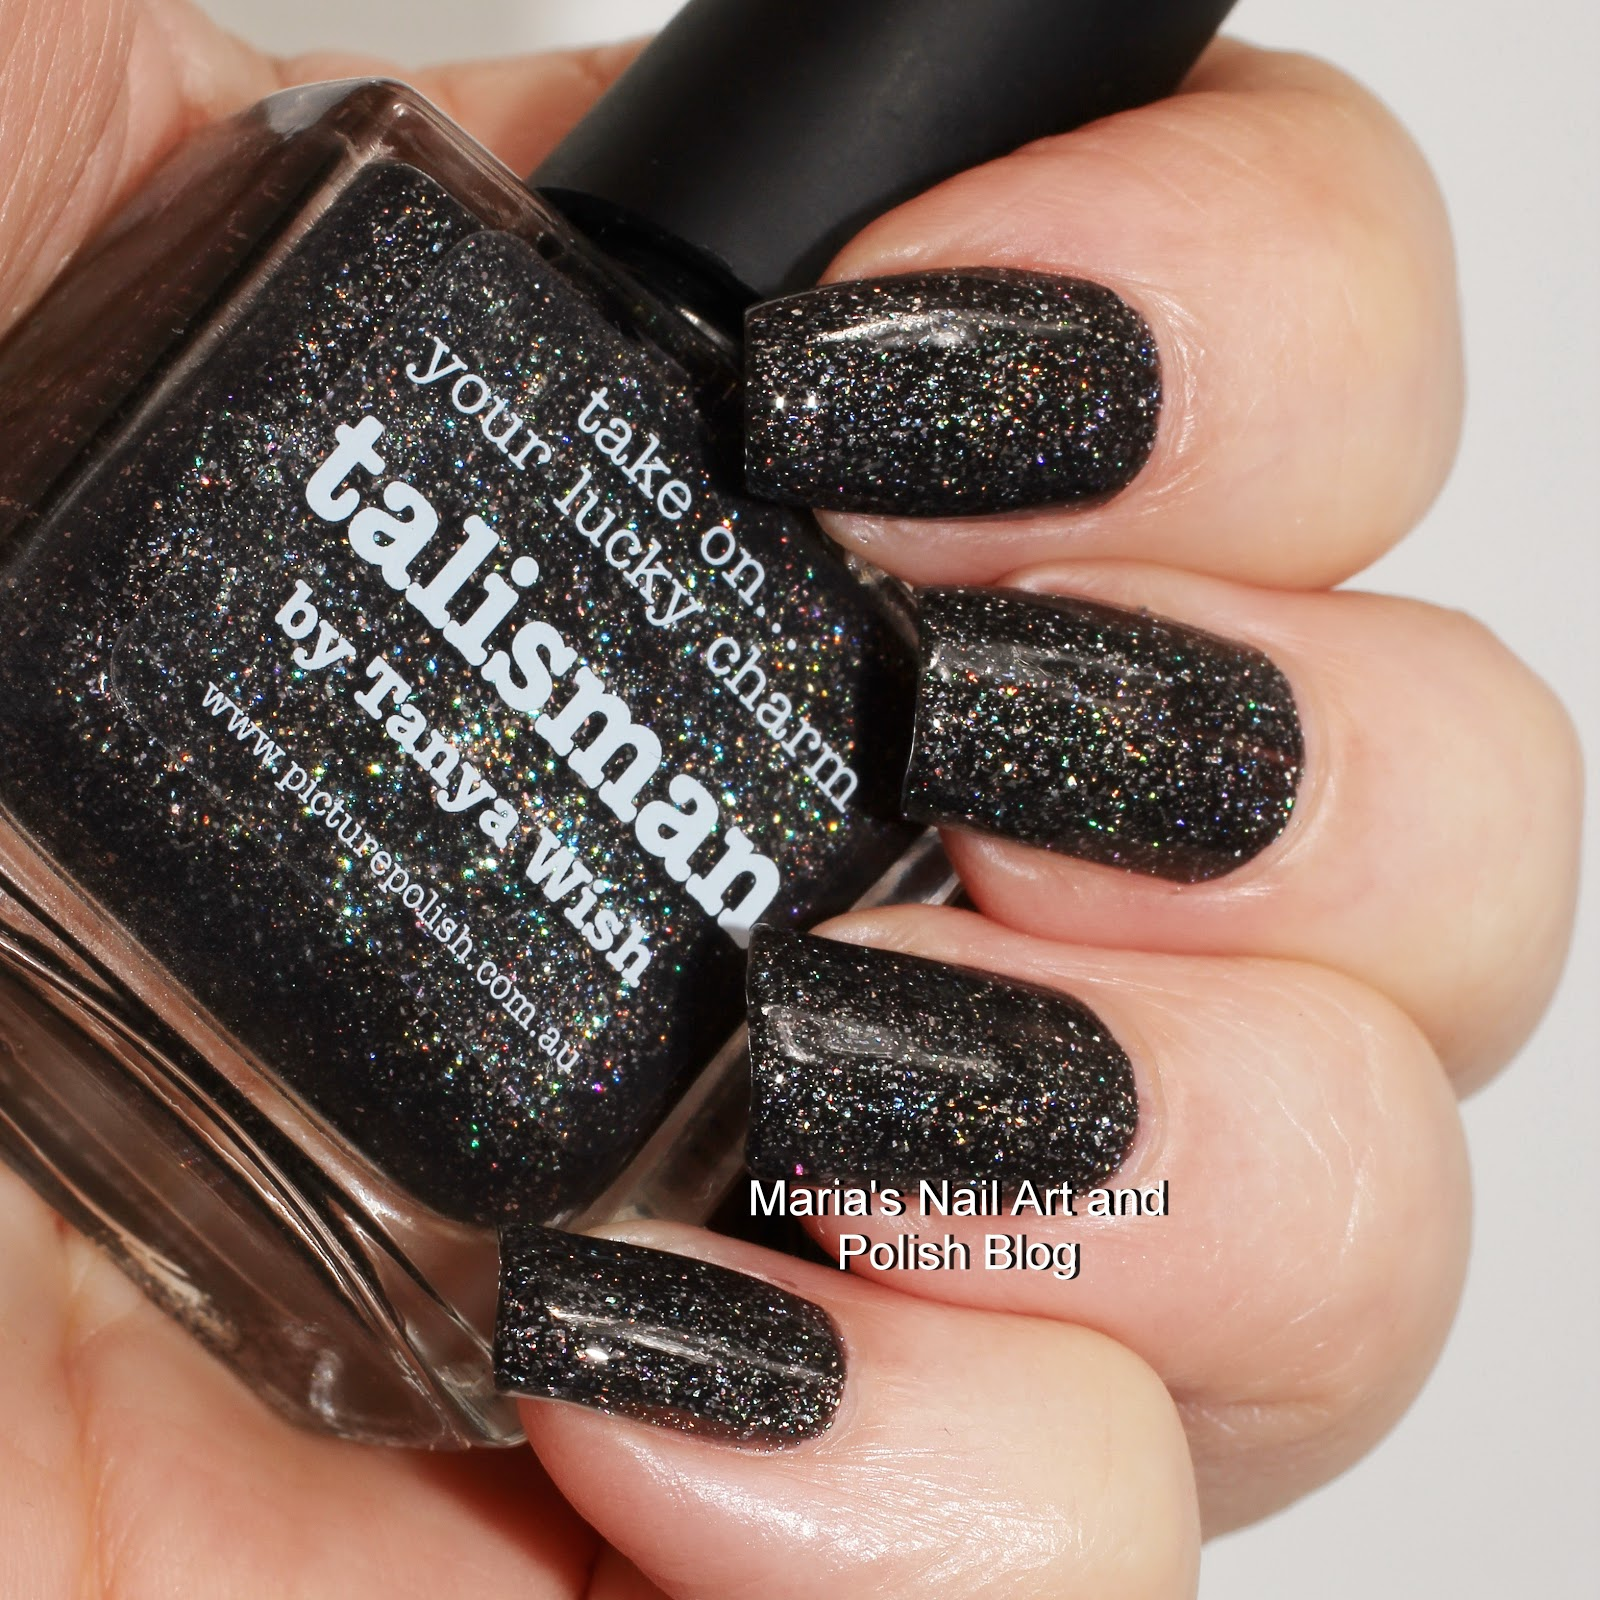 Marias Nail Art and Polish Blog: Picture Polish Talisman swatches